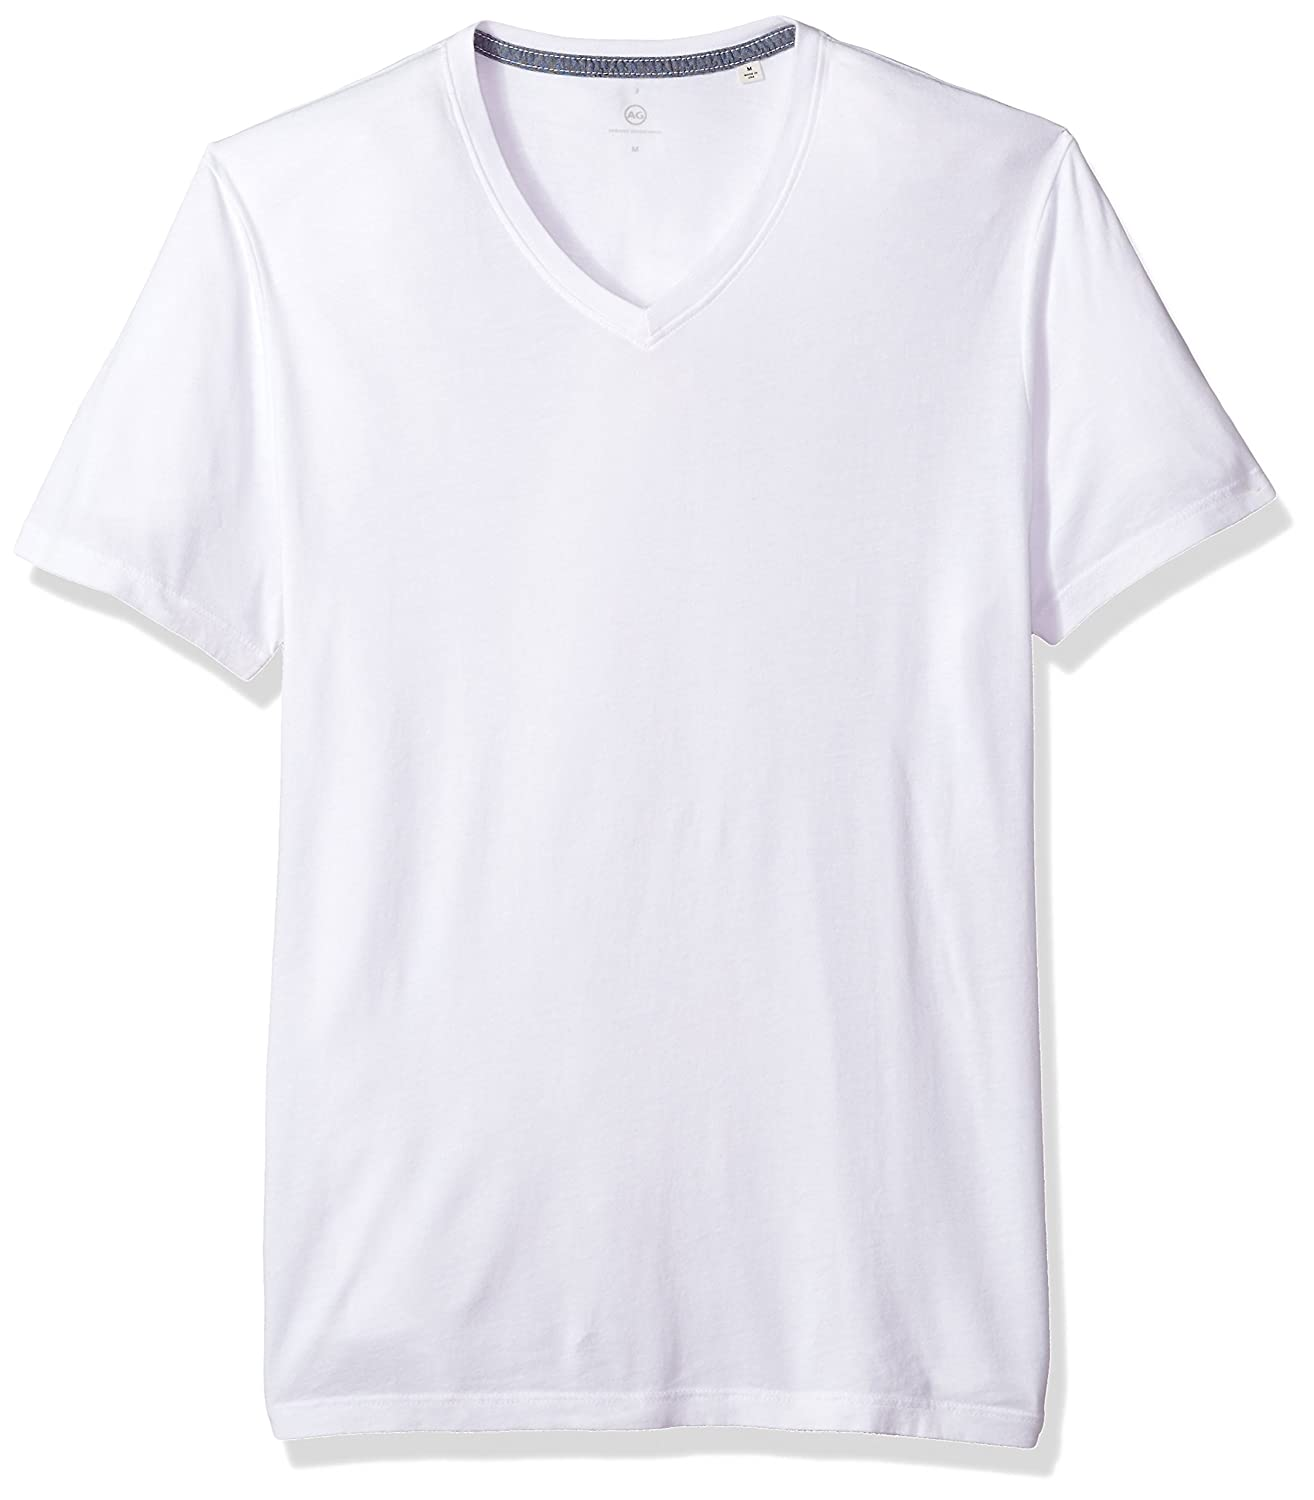 AG Adriano Goldschmied Mens Bryce Short Sleeve Vee Neck Tee